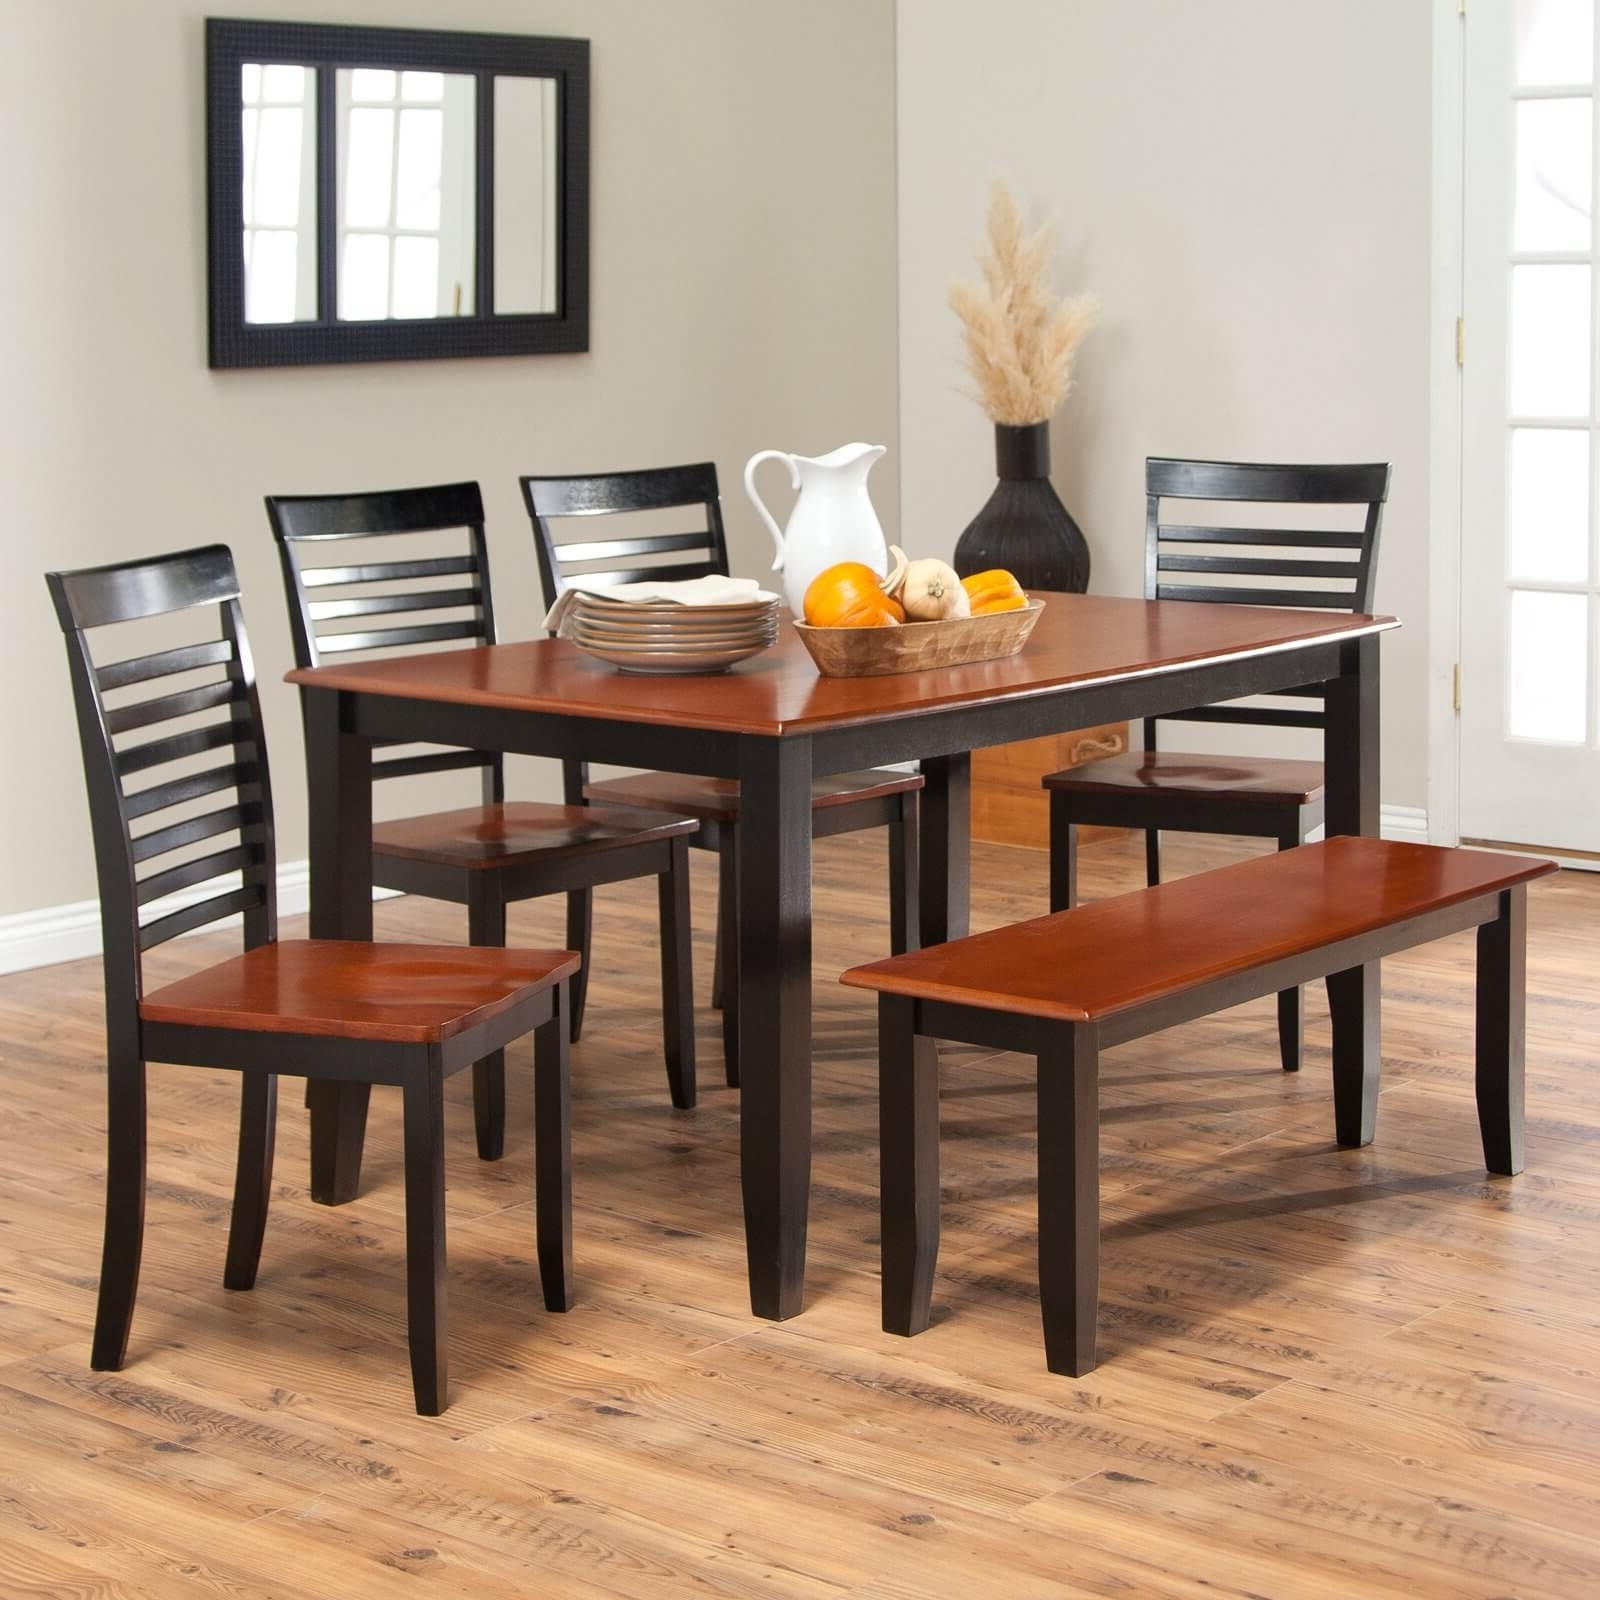 Dark Wood Dining Tables And Chairs Inside Most Popular 26 Dining Room Sets (Big And Small) With Bench Seating (2018) (View 8 of 25)